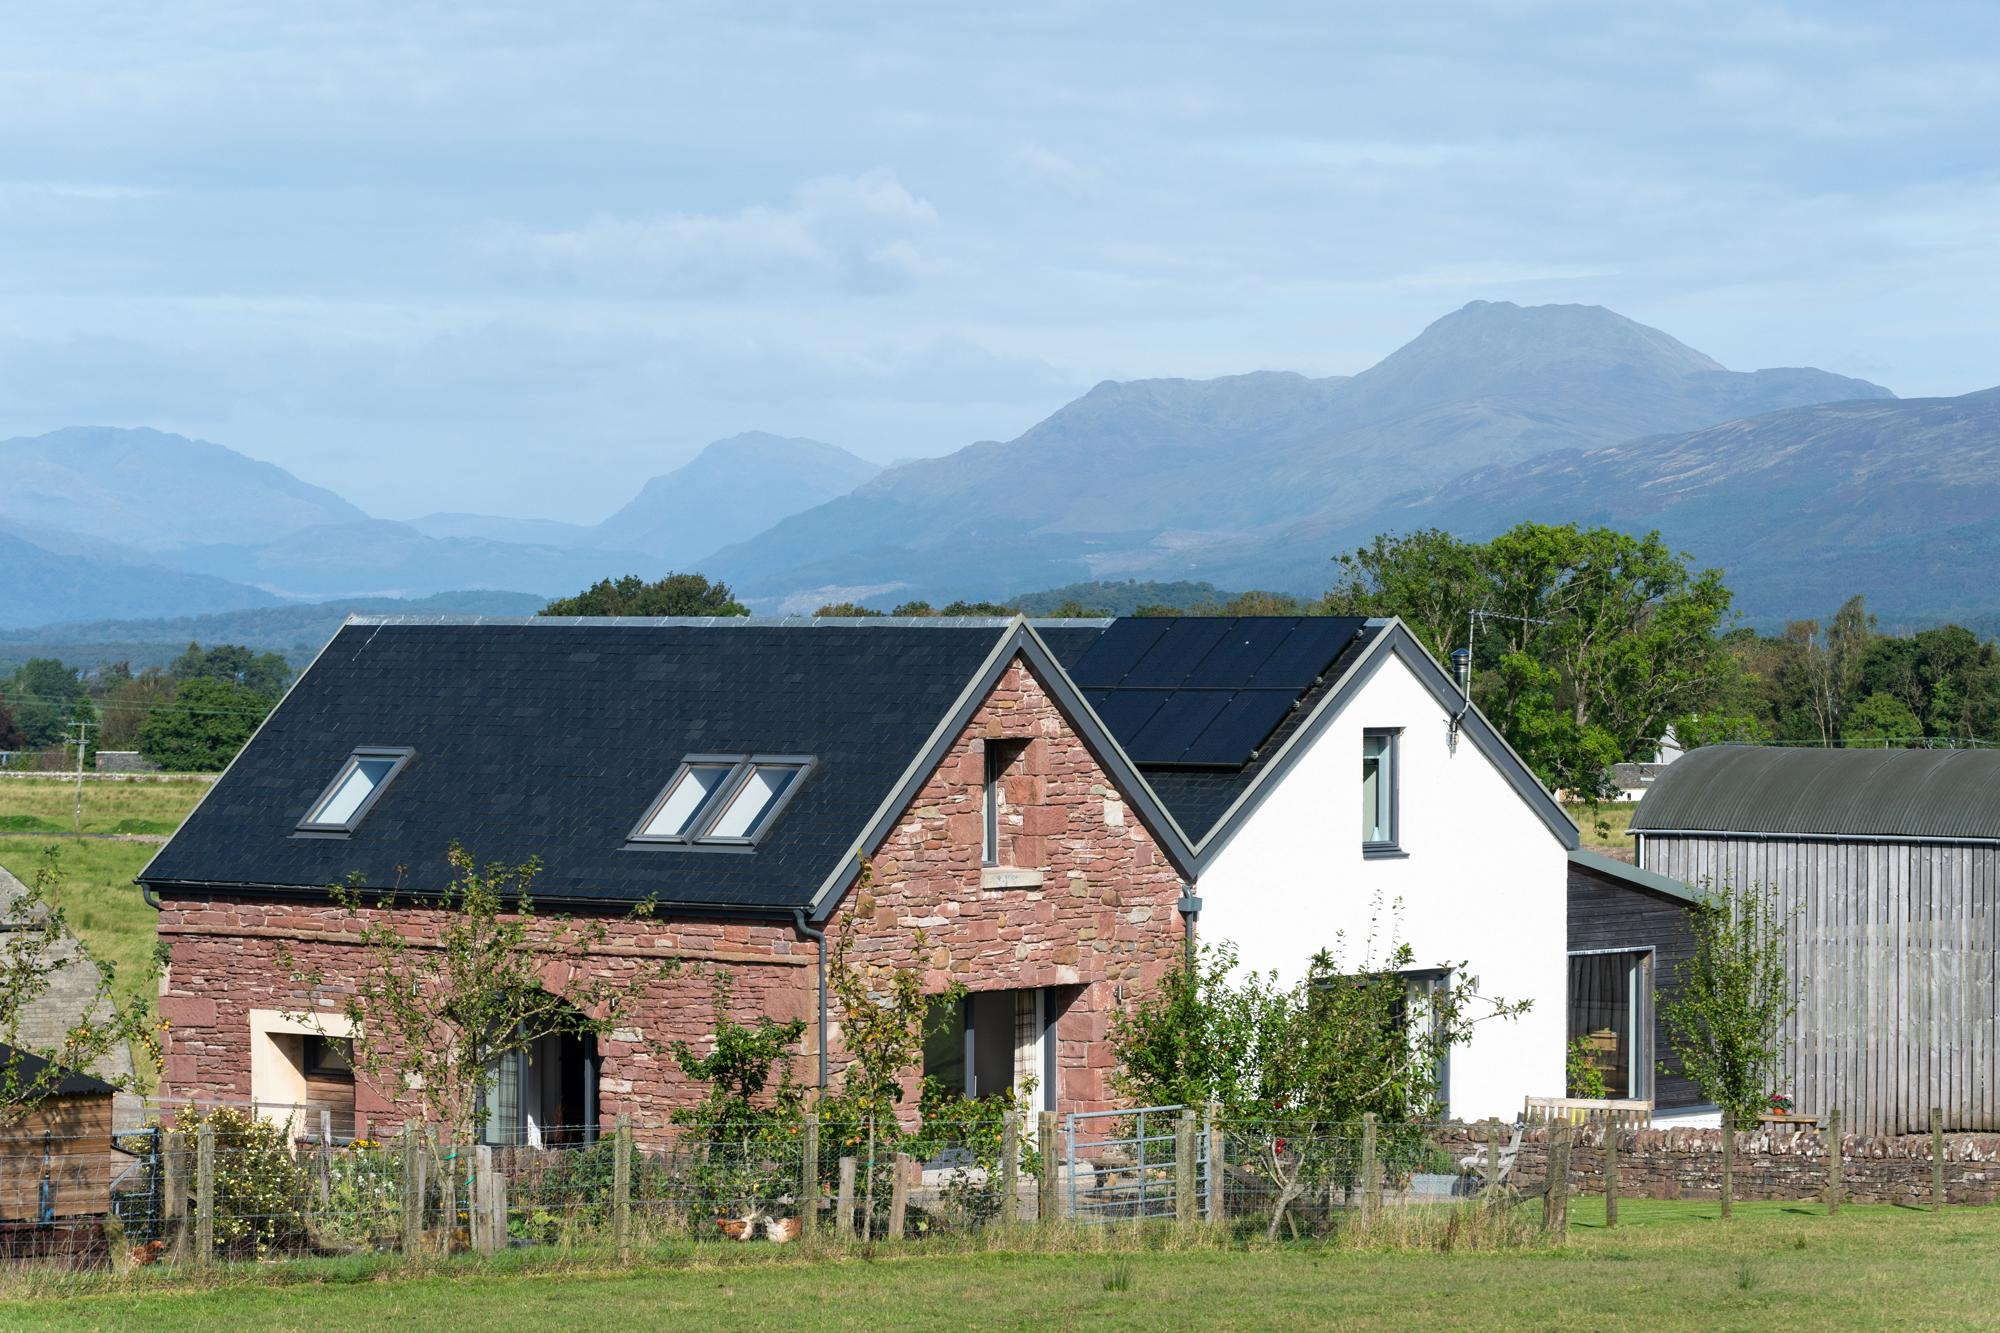 Self-Catering in Central Scotland holidays at Cool Places